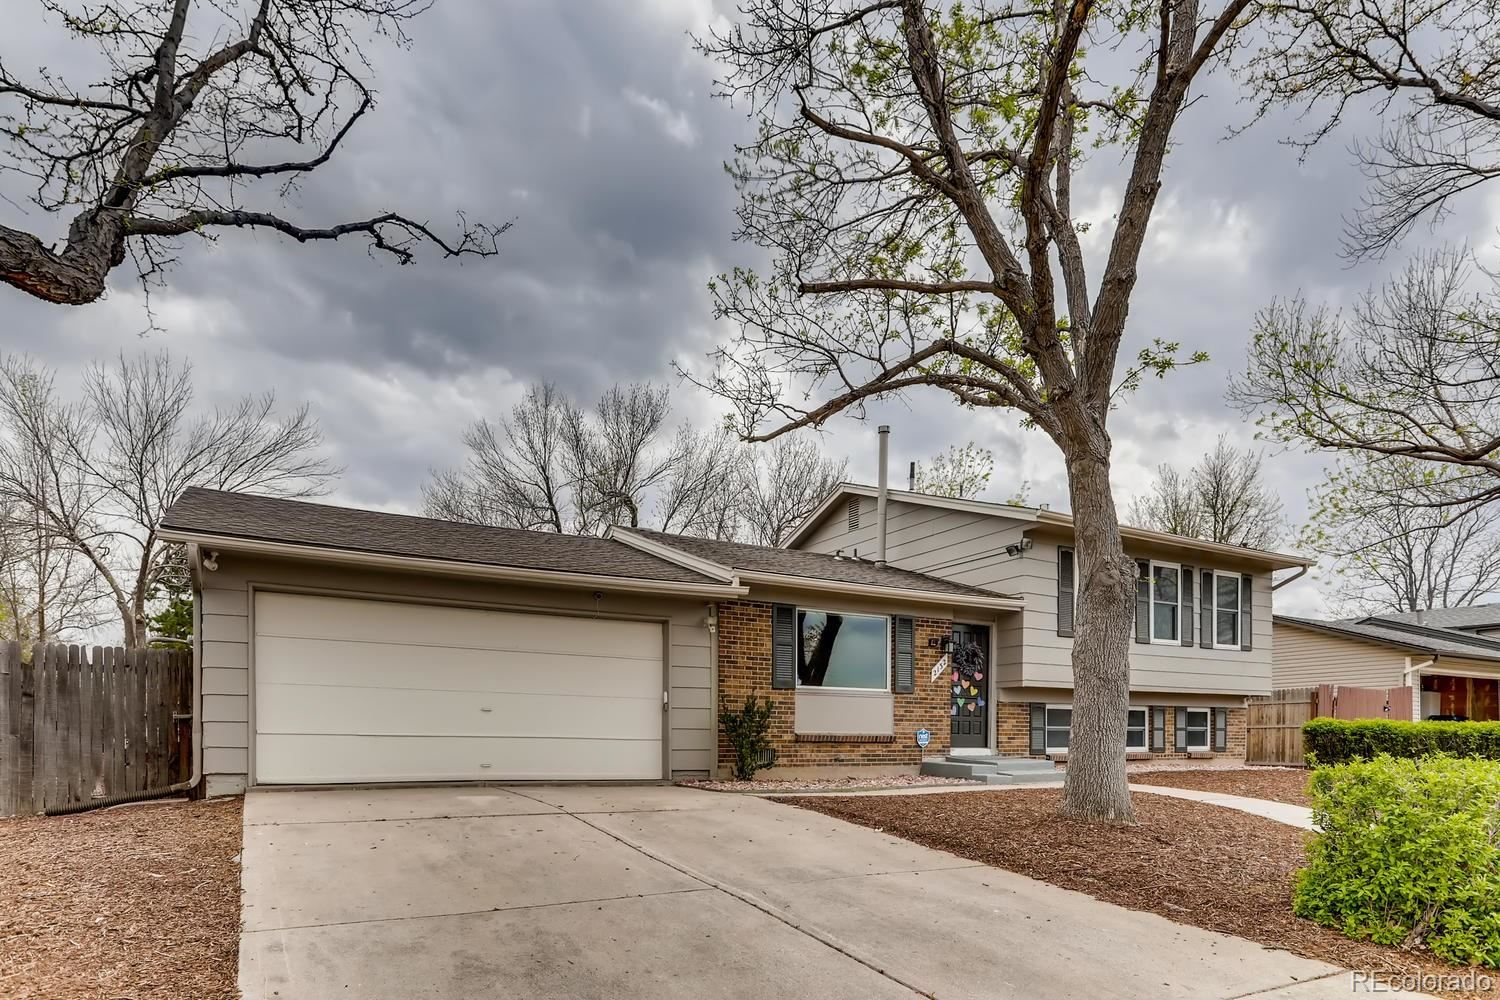 2132 S Kittredge Way, Aurora, CO 80013 - #: 6778278